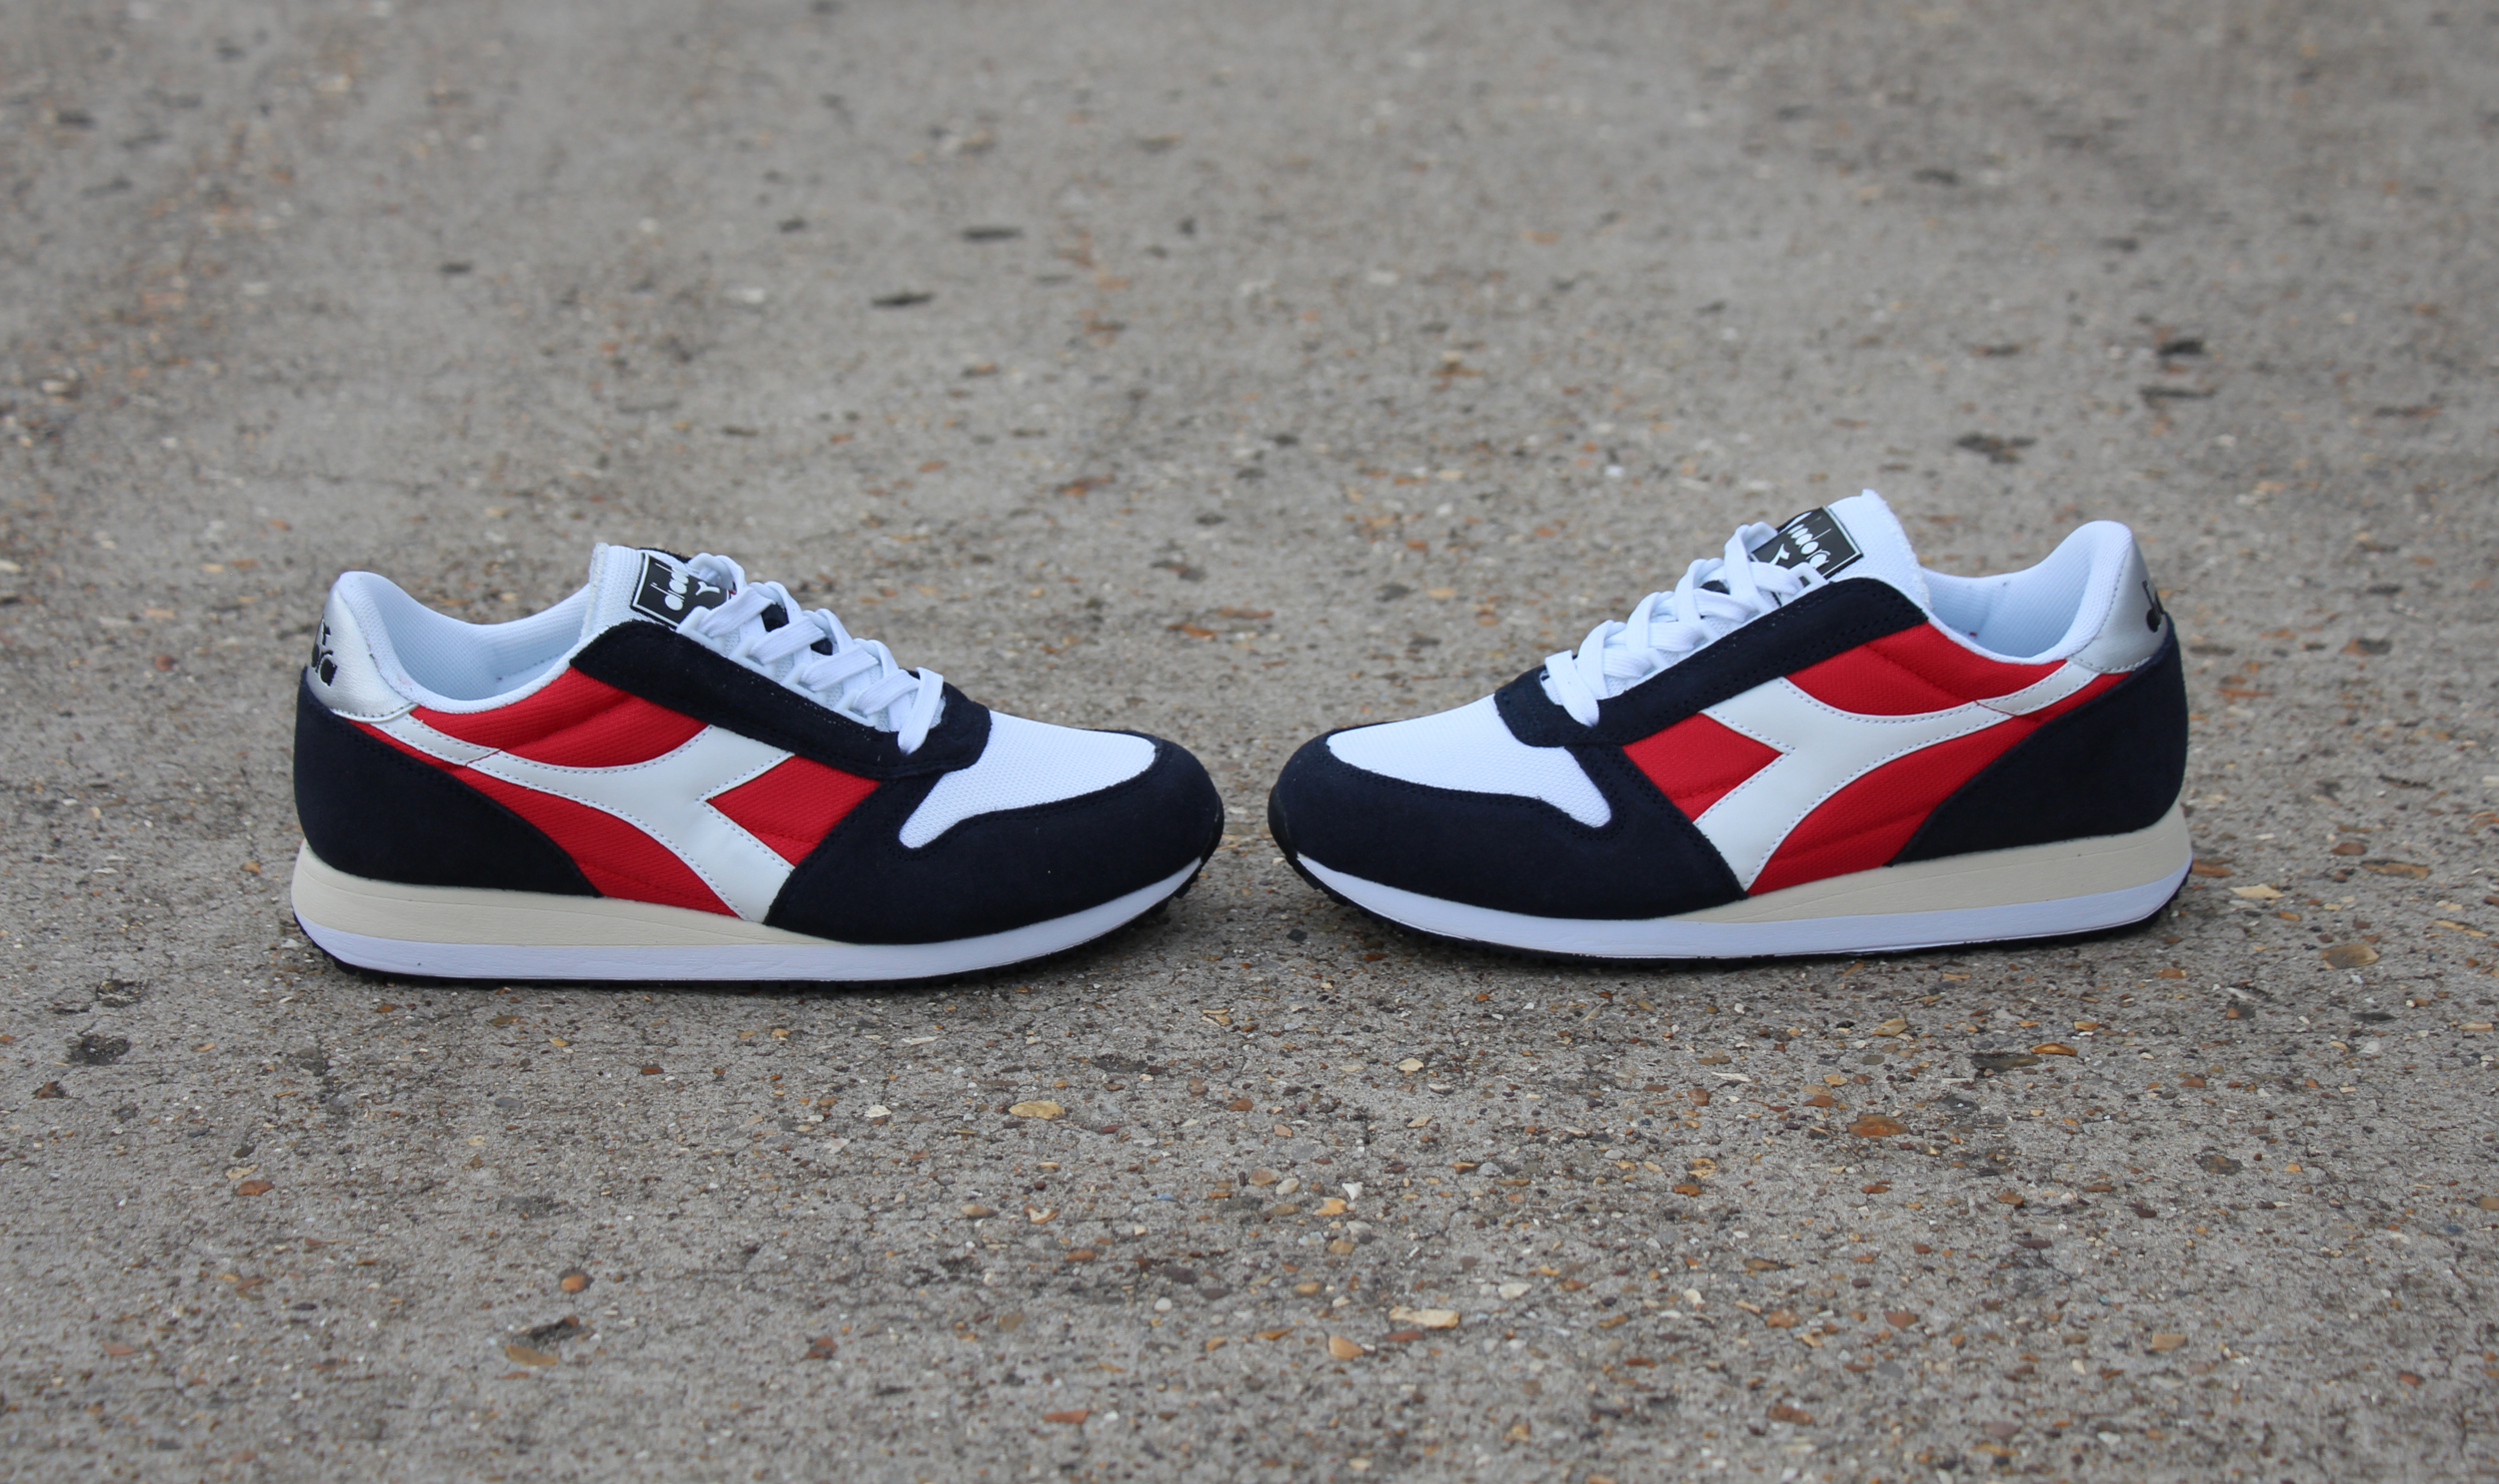 Classic 90s Runners From The Diadora Archive 80's Casual